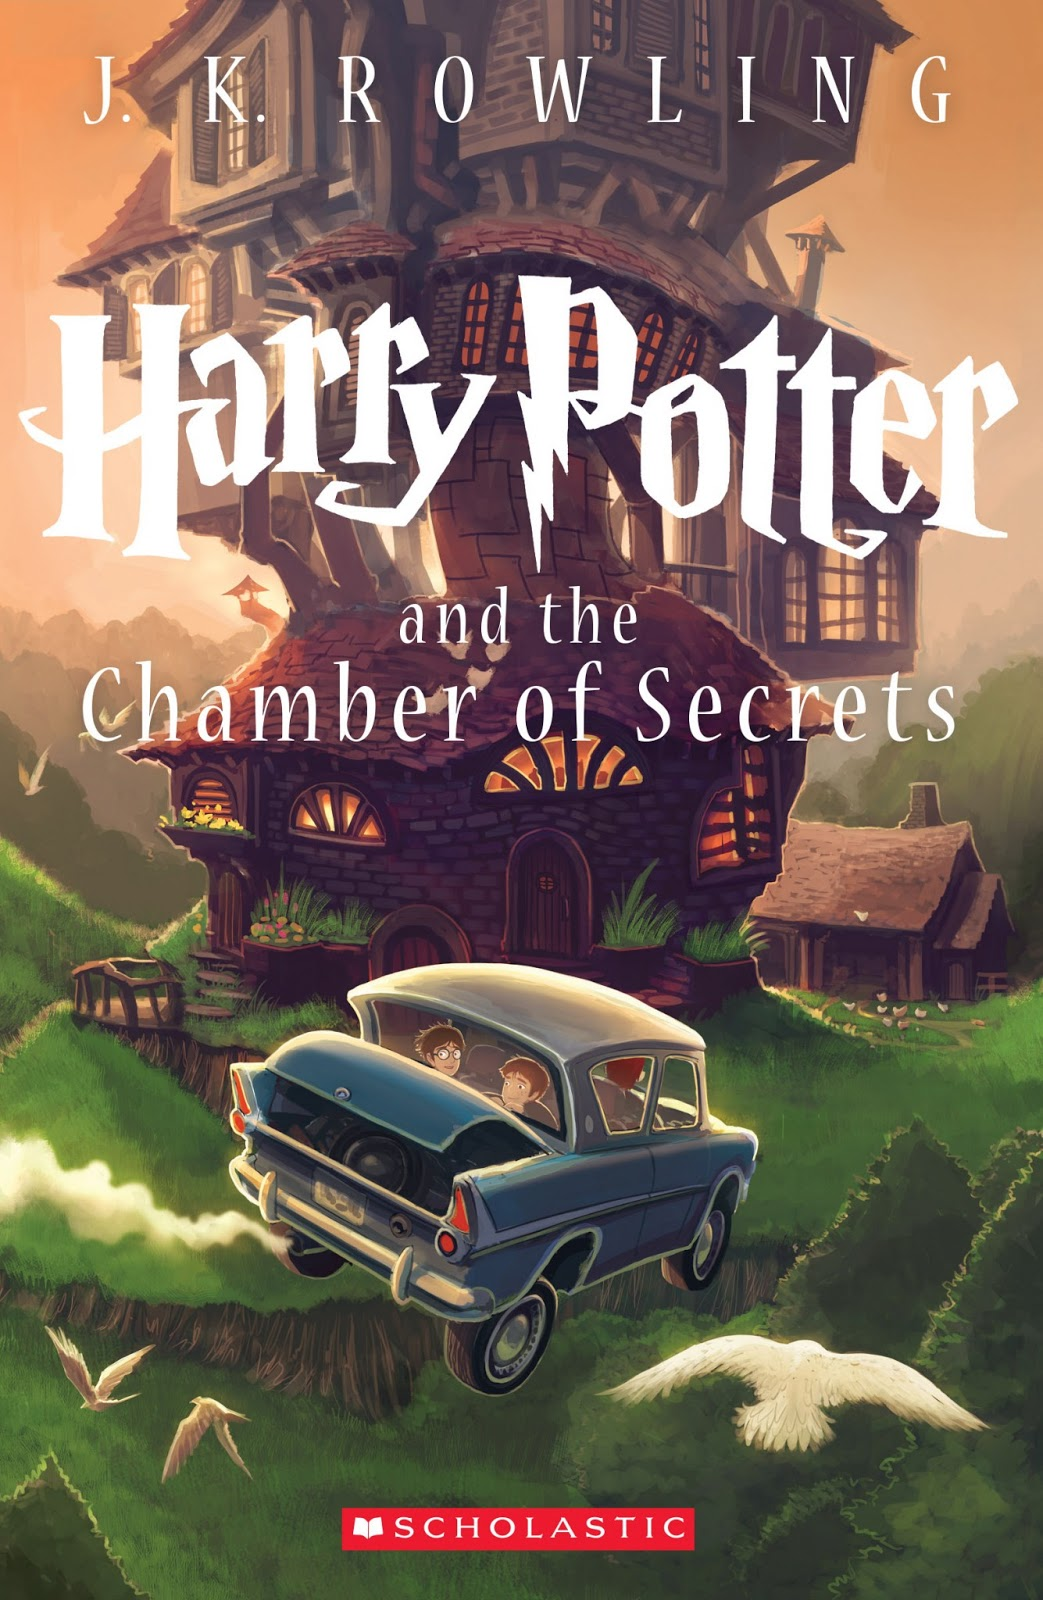 The new book cover of harry potter amp the chamber of secrets